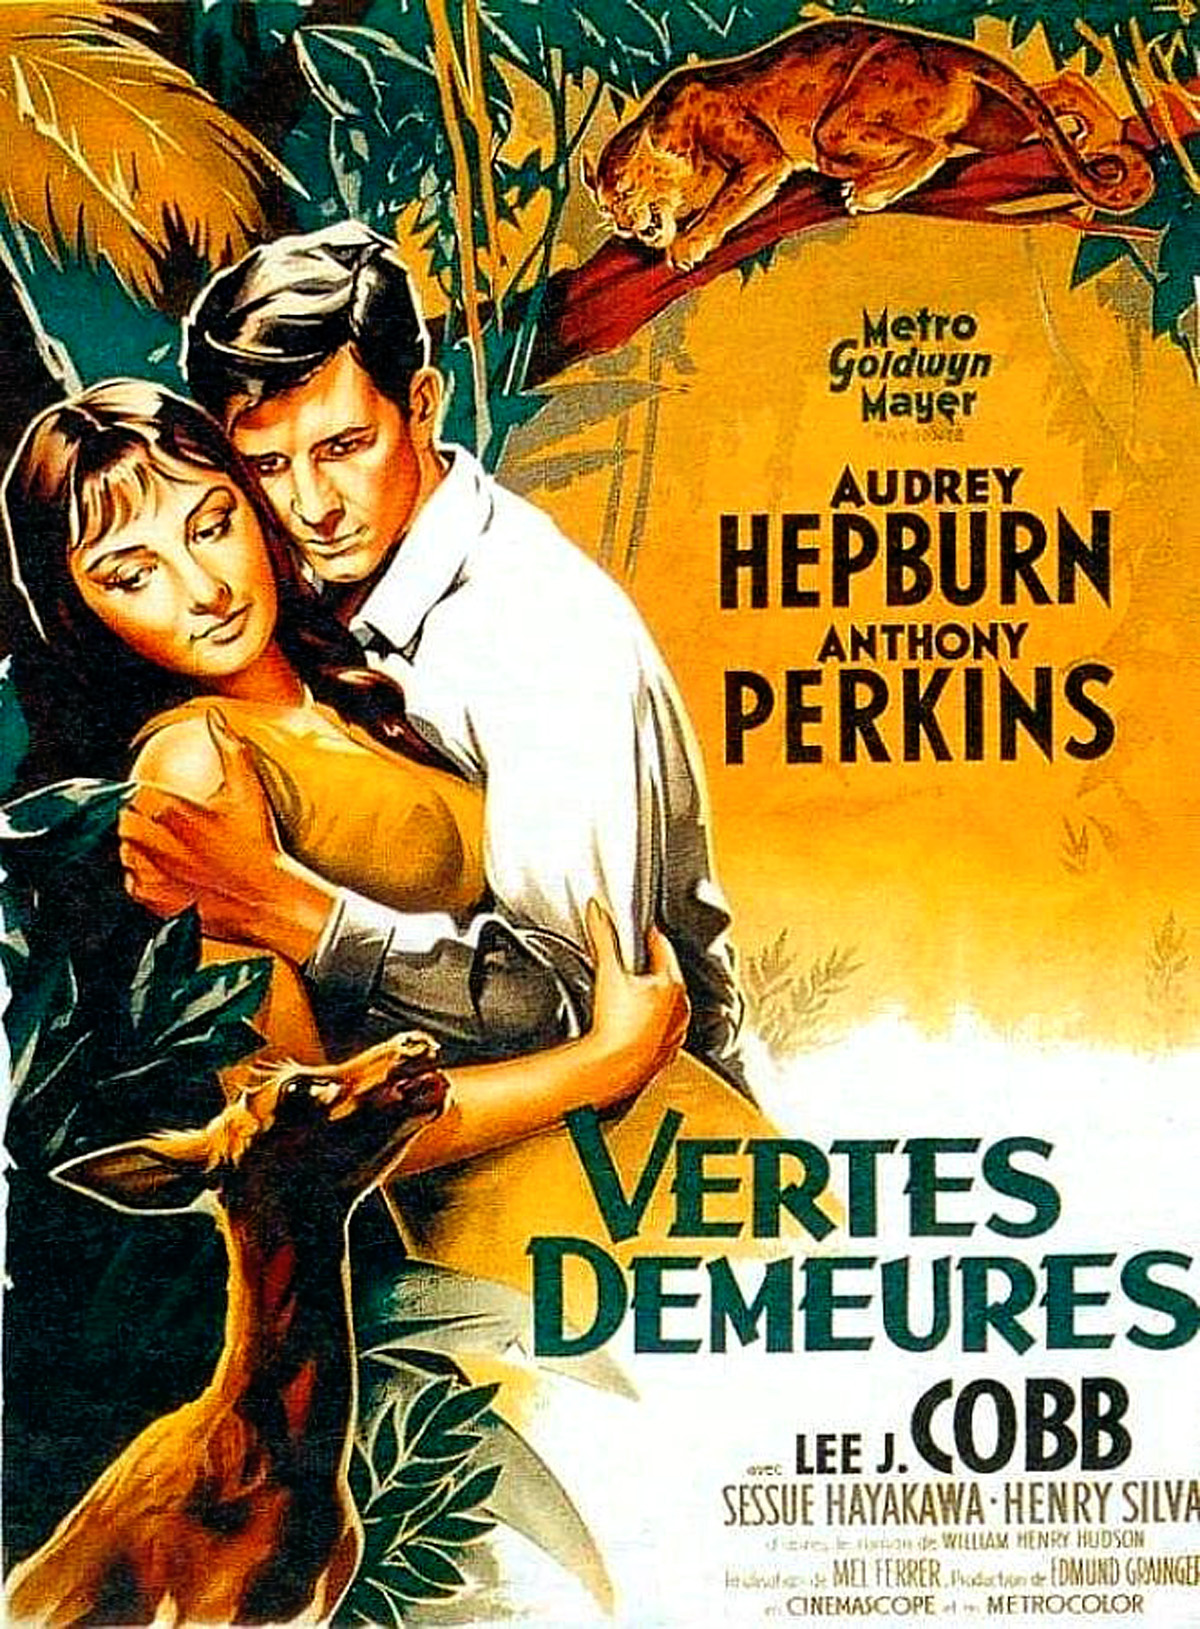 Wallpapers Gallery Falls Audrey Hepburn Green Mansions 1959 Starring Anthony